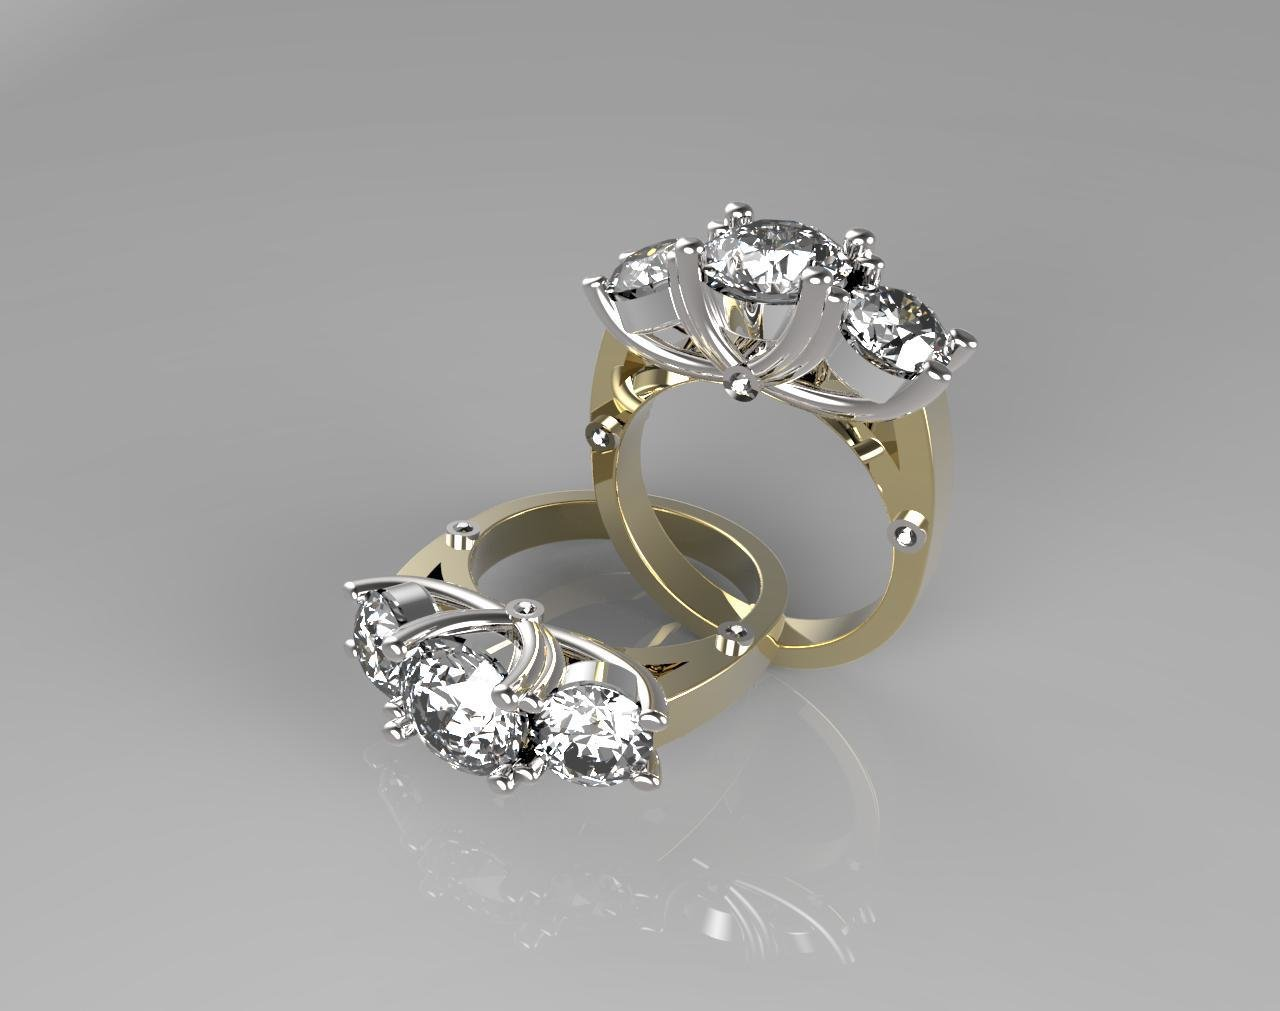 3 Stones engagement ring,(size 6.5 in US sizing)